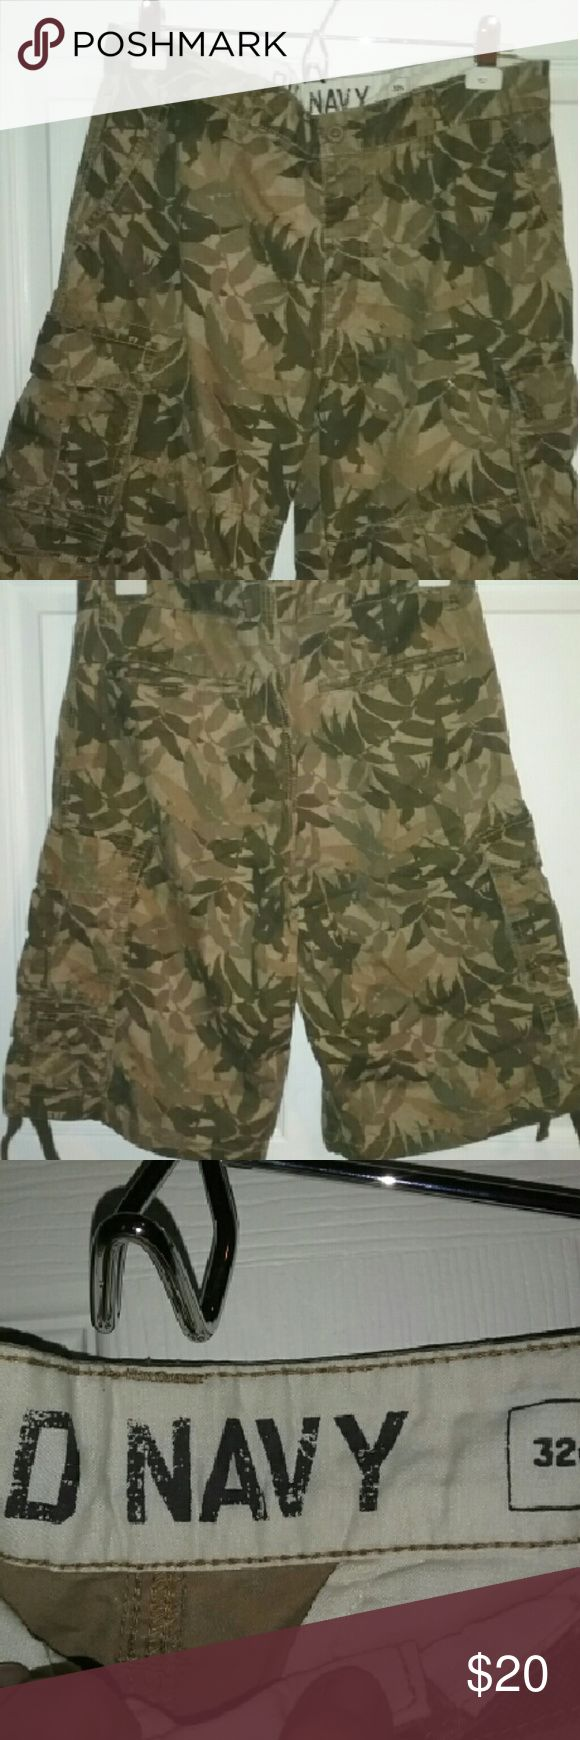 Shorts Men's 8 pocket camouflage shorts never worn Old Navy Shorts Cargo